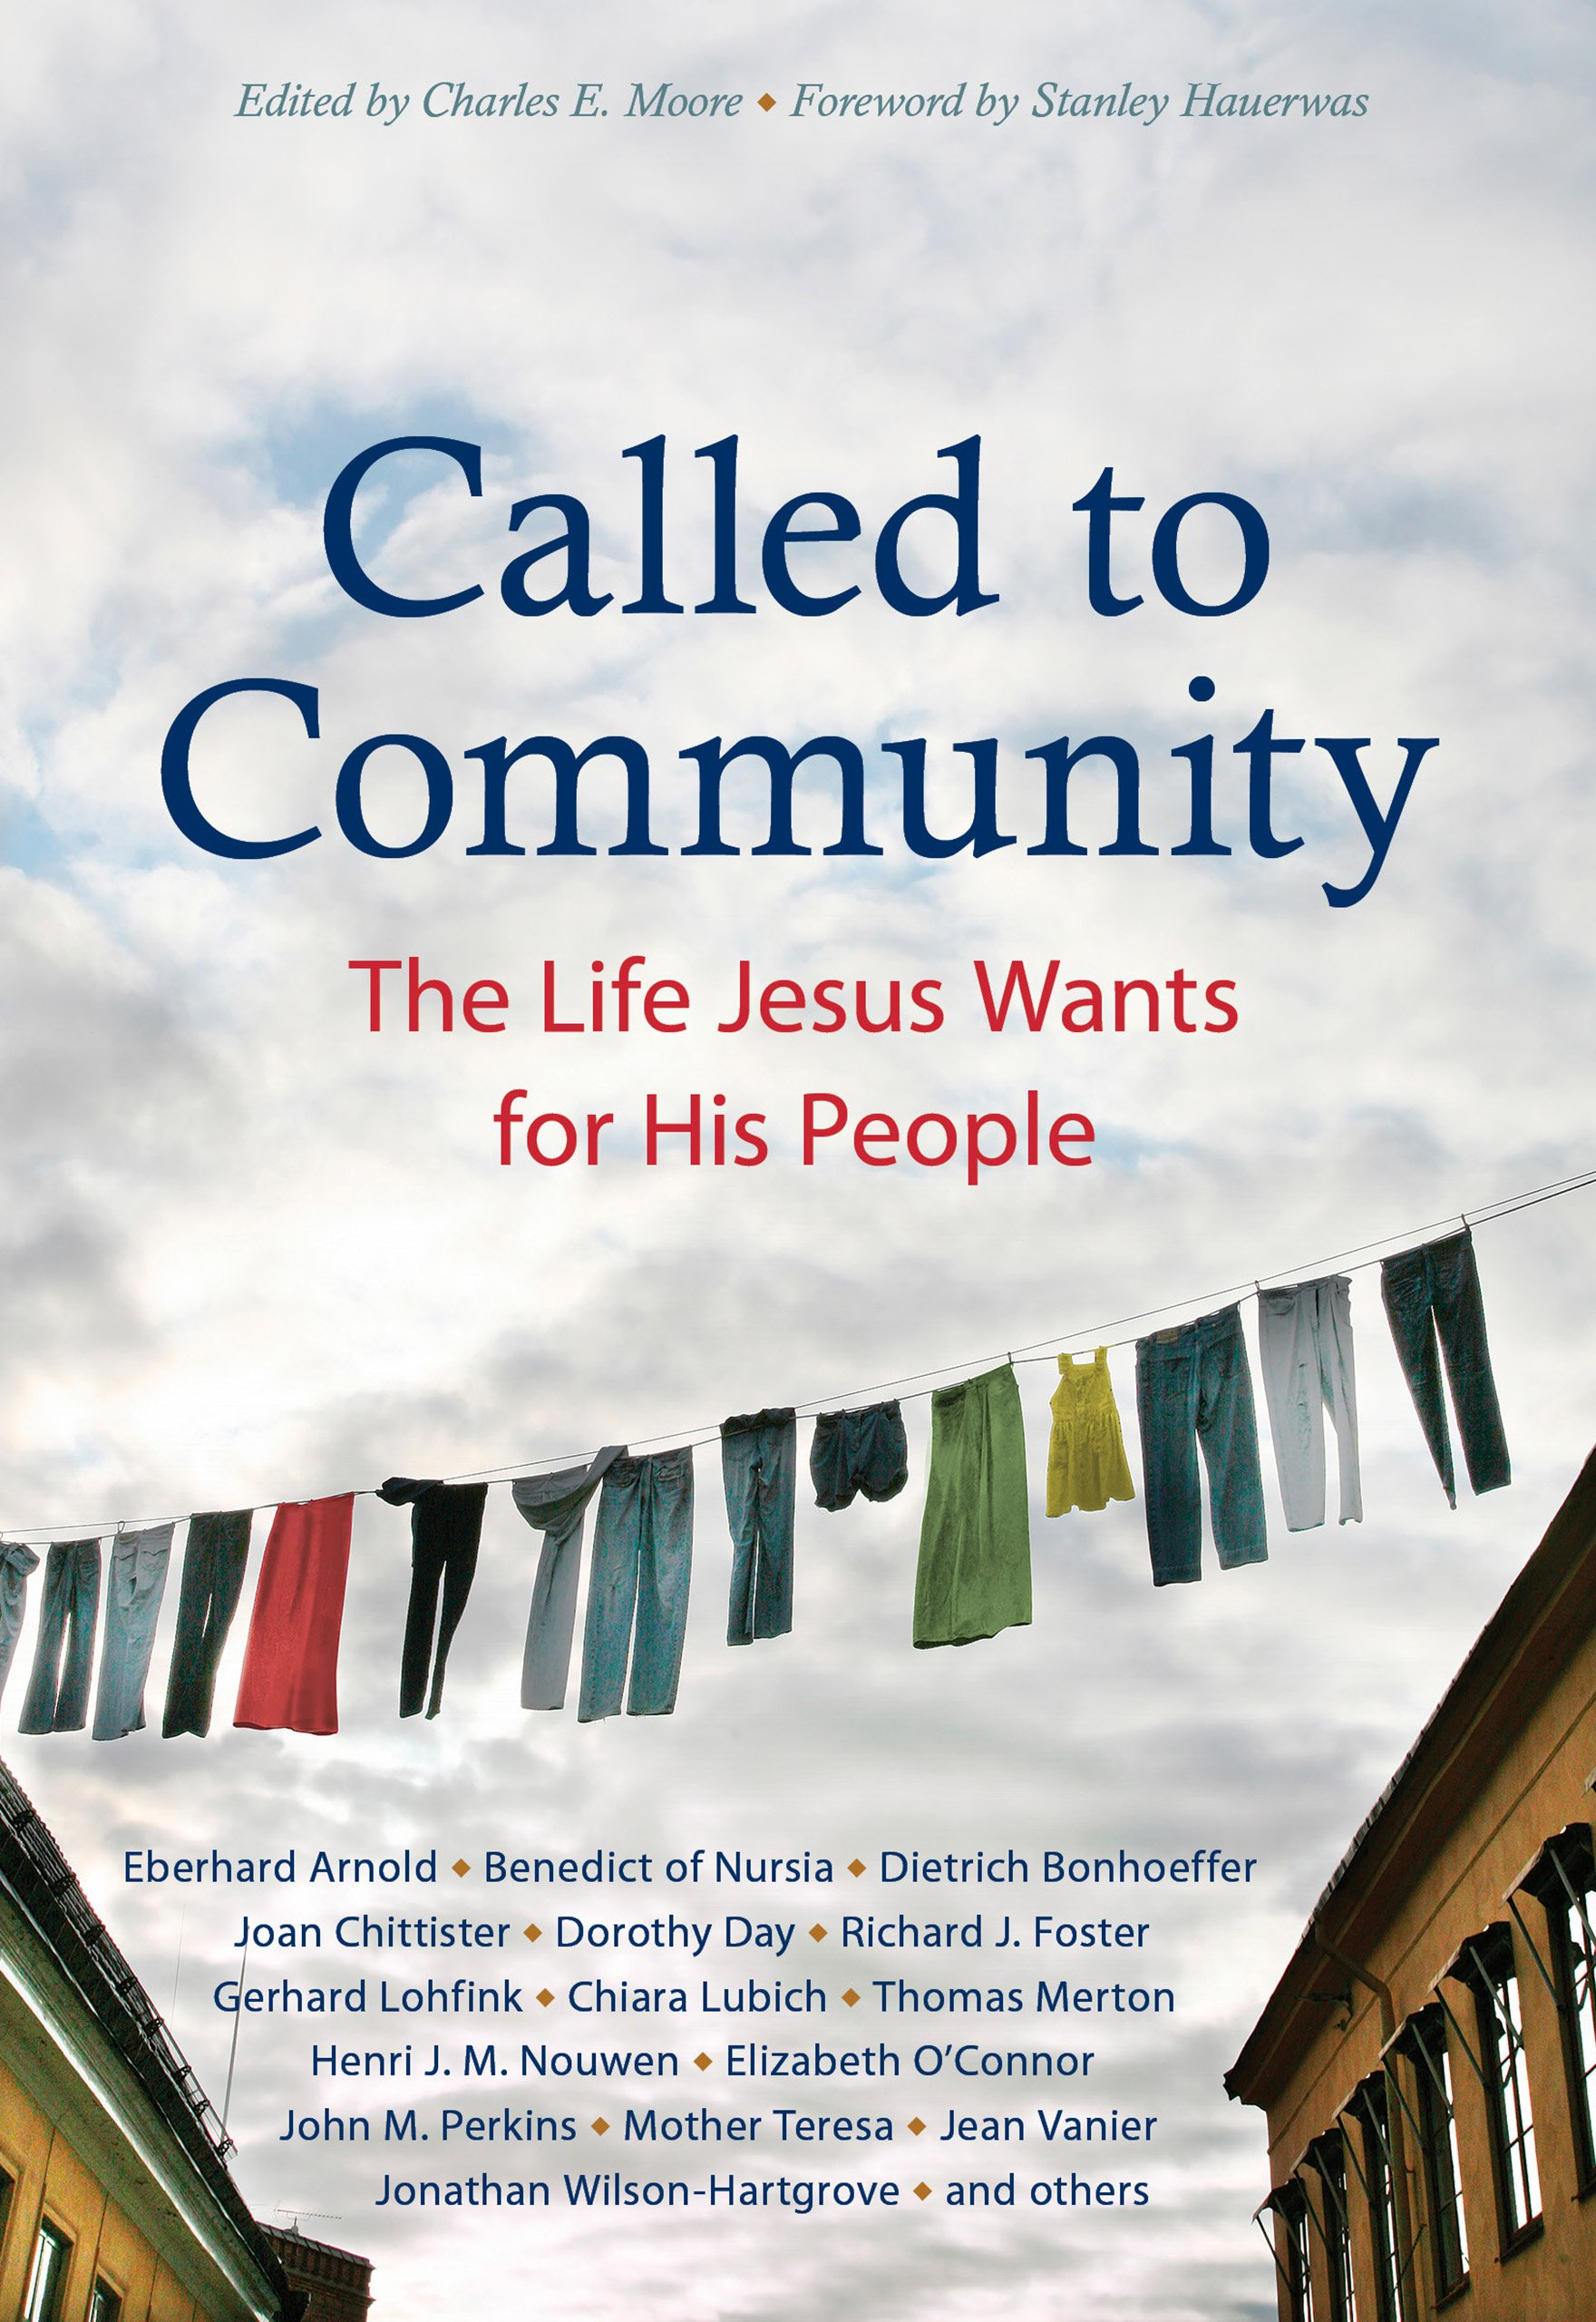 Called to Community - This book is both informative and practical―written with a short chapter for each week of the year. Designed to spark conversation within a group devotion setting, readers can dive deep into community together. … This book delves into the nitty-gritty details of Christian community living and encourages readers to confront the dissatisfaction stirred up by its challenging pages. Though not a light text by any means, this book is ideal for those seeking to approach Christian community more intentionally and comprehensively.